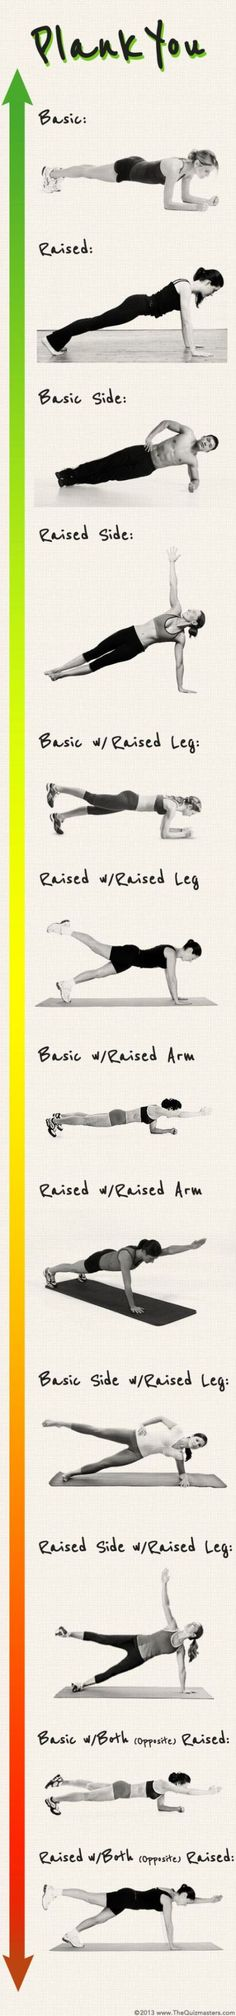 Plank plank plank plank plank...How many versions have you tried?? #Abs #Core #exercise